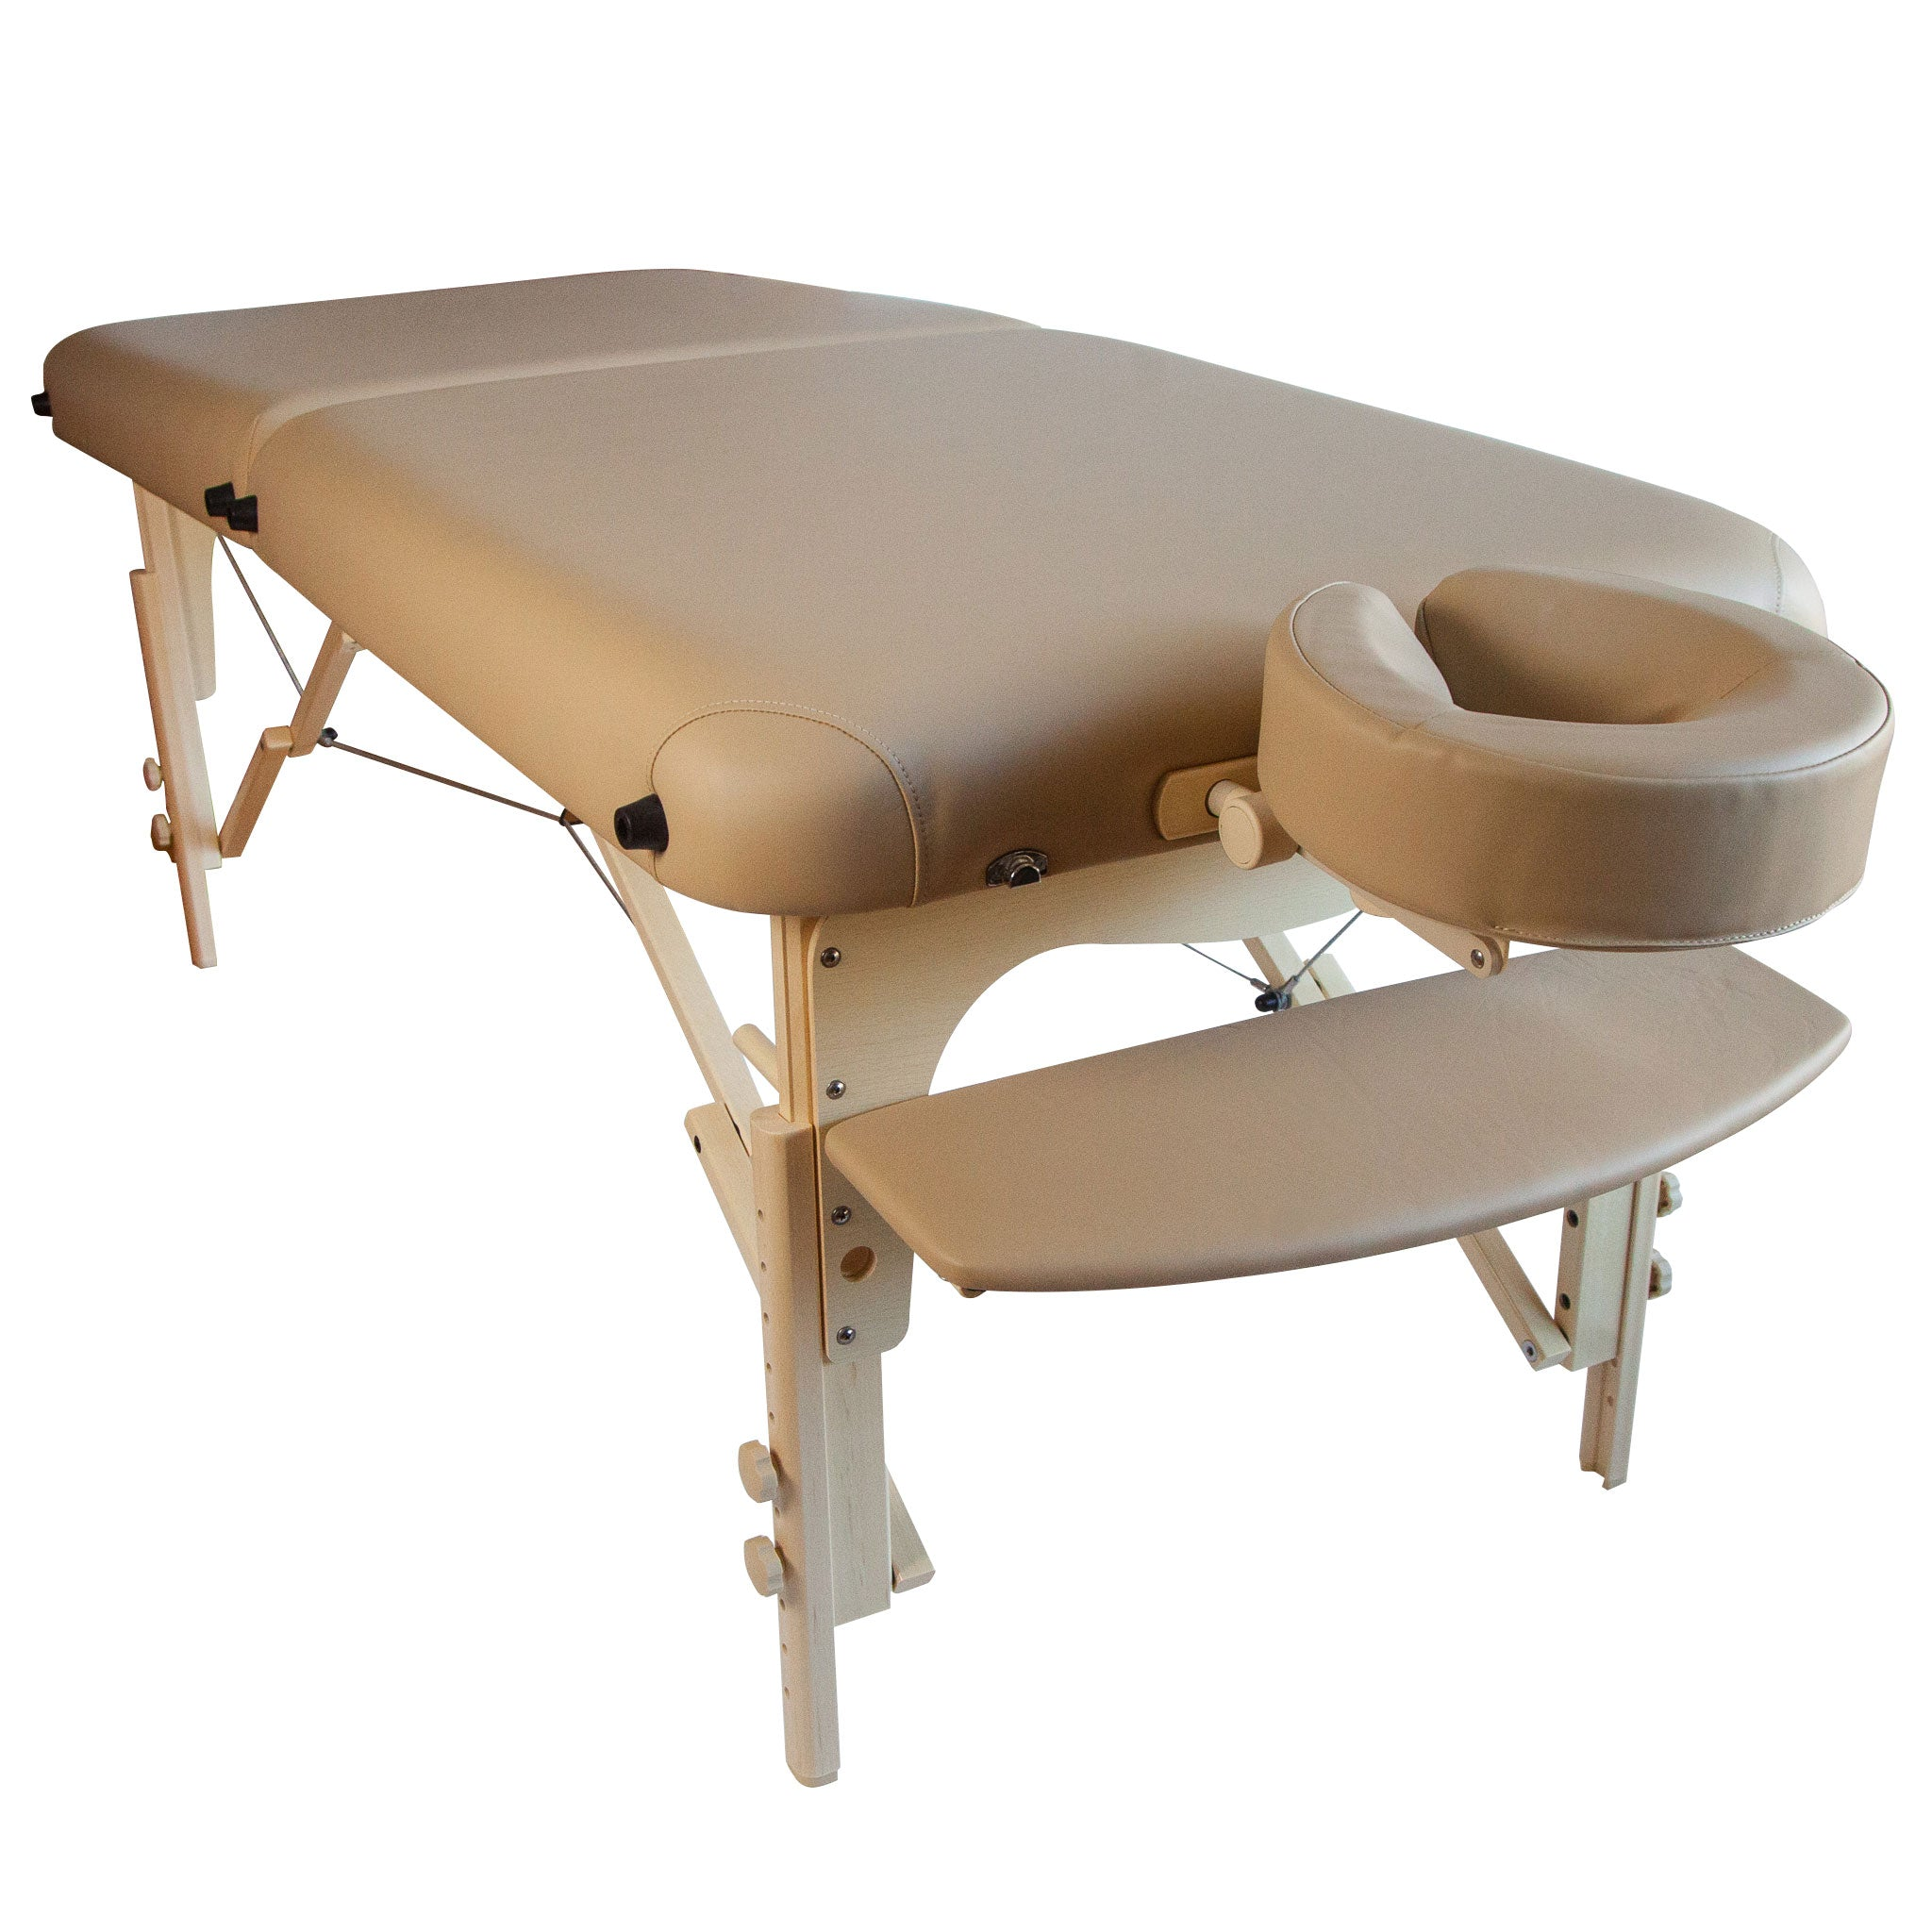 "Massage Table - 30"" Portable"